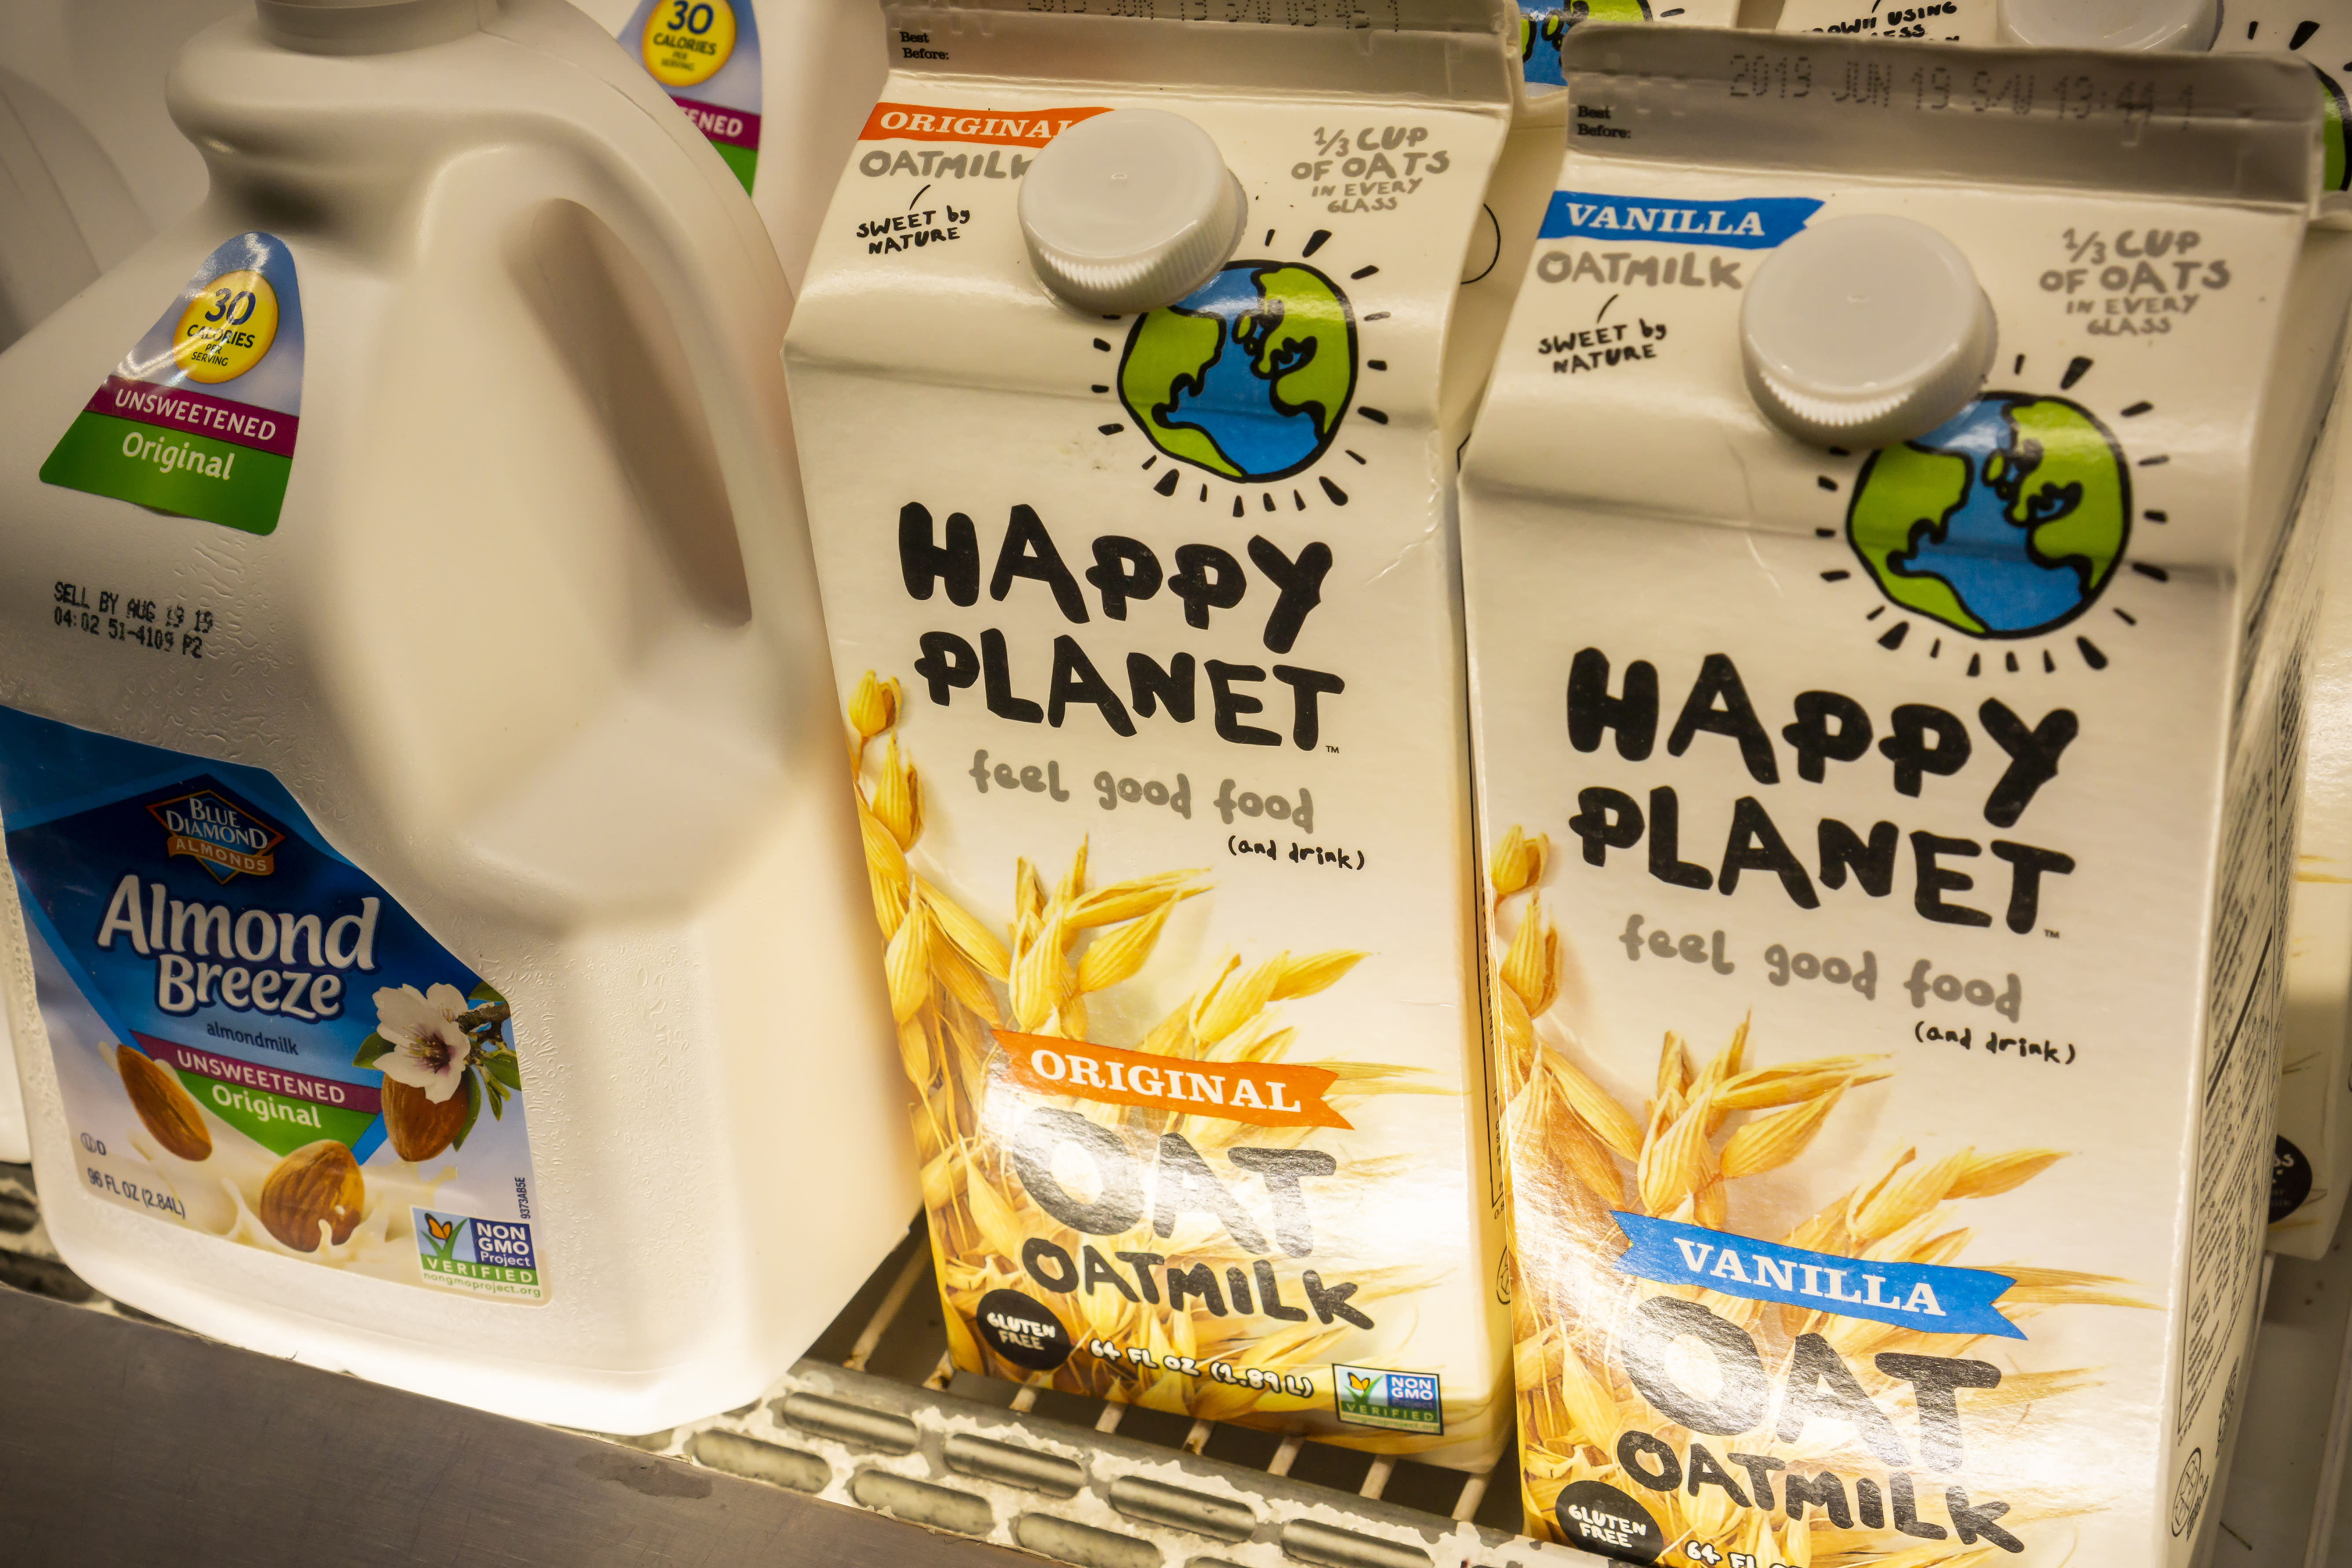 Vegan milk sales soar 70% in the UK as more Brits switch to plant-based alternatives